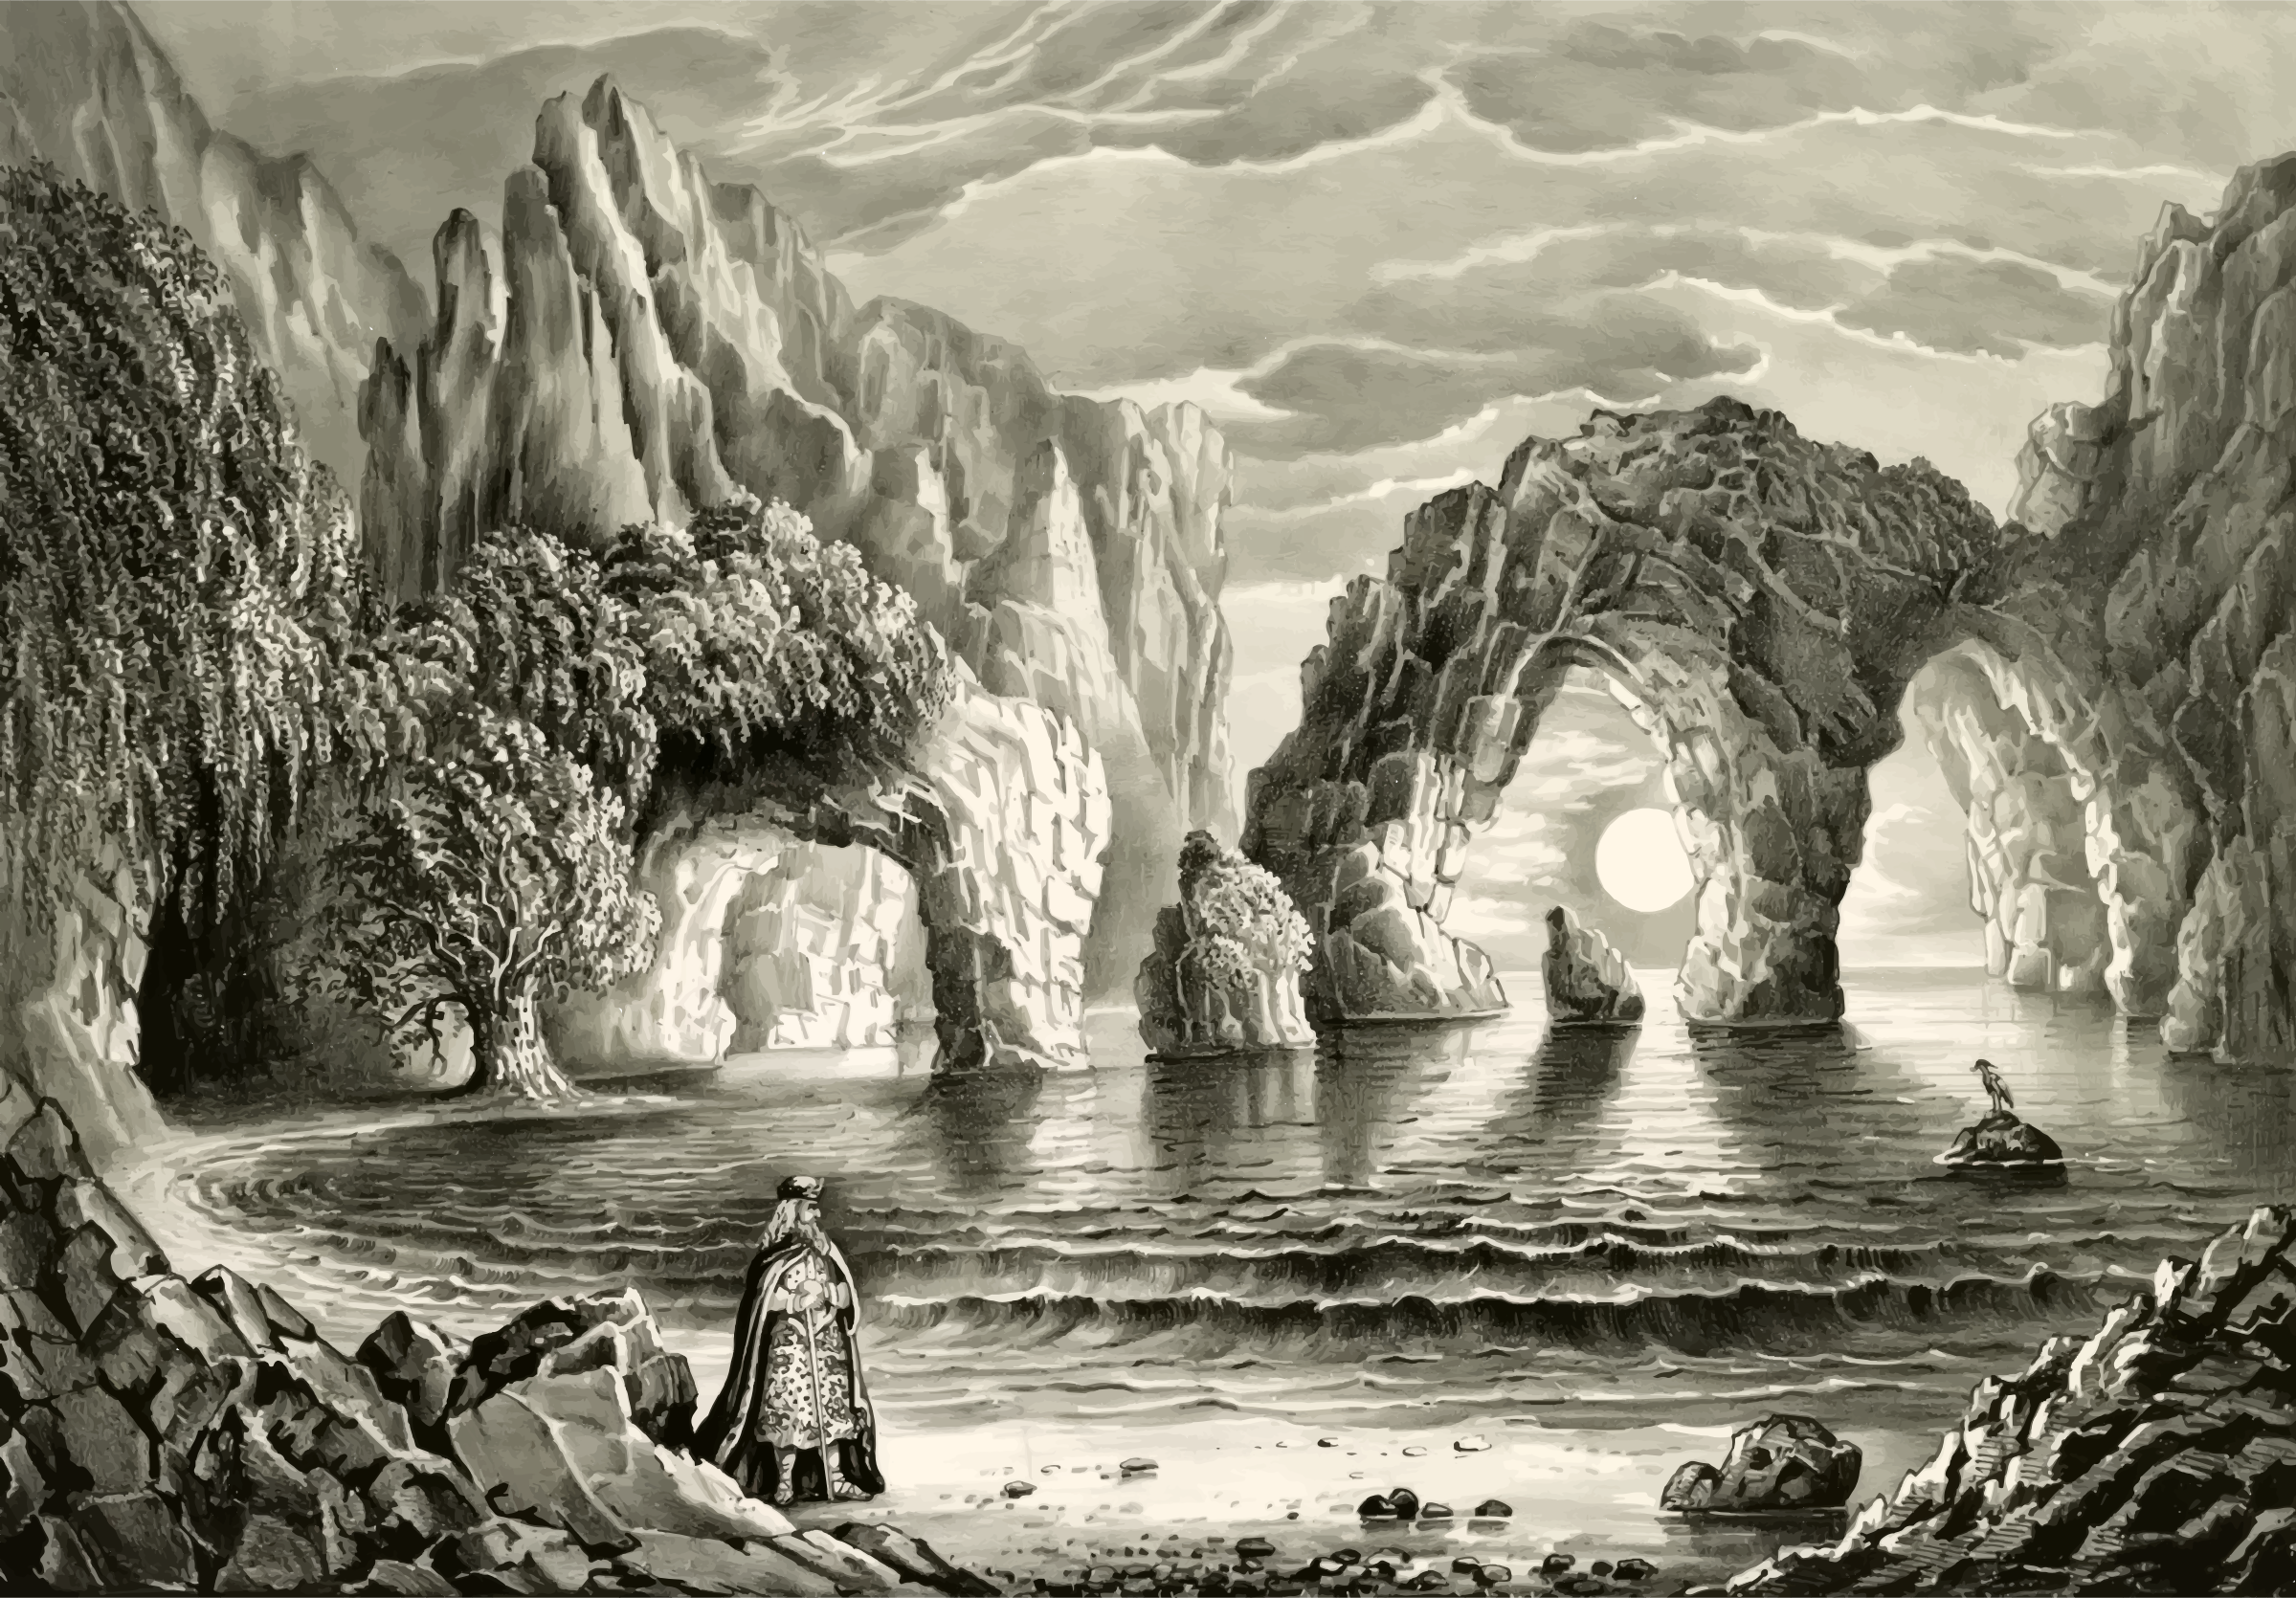 The Magic Grottoes 1870 by GDJ